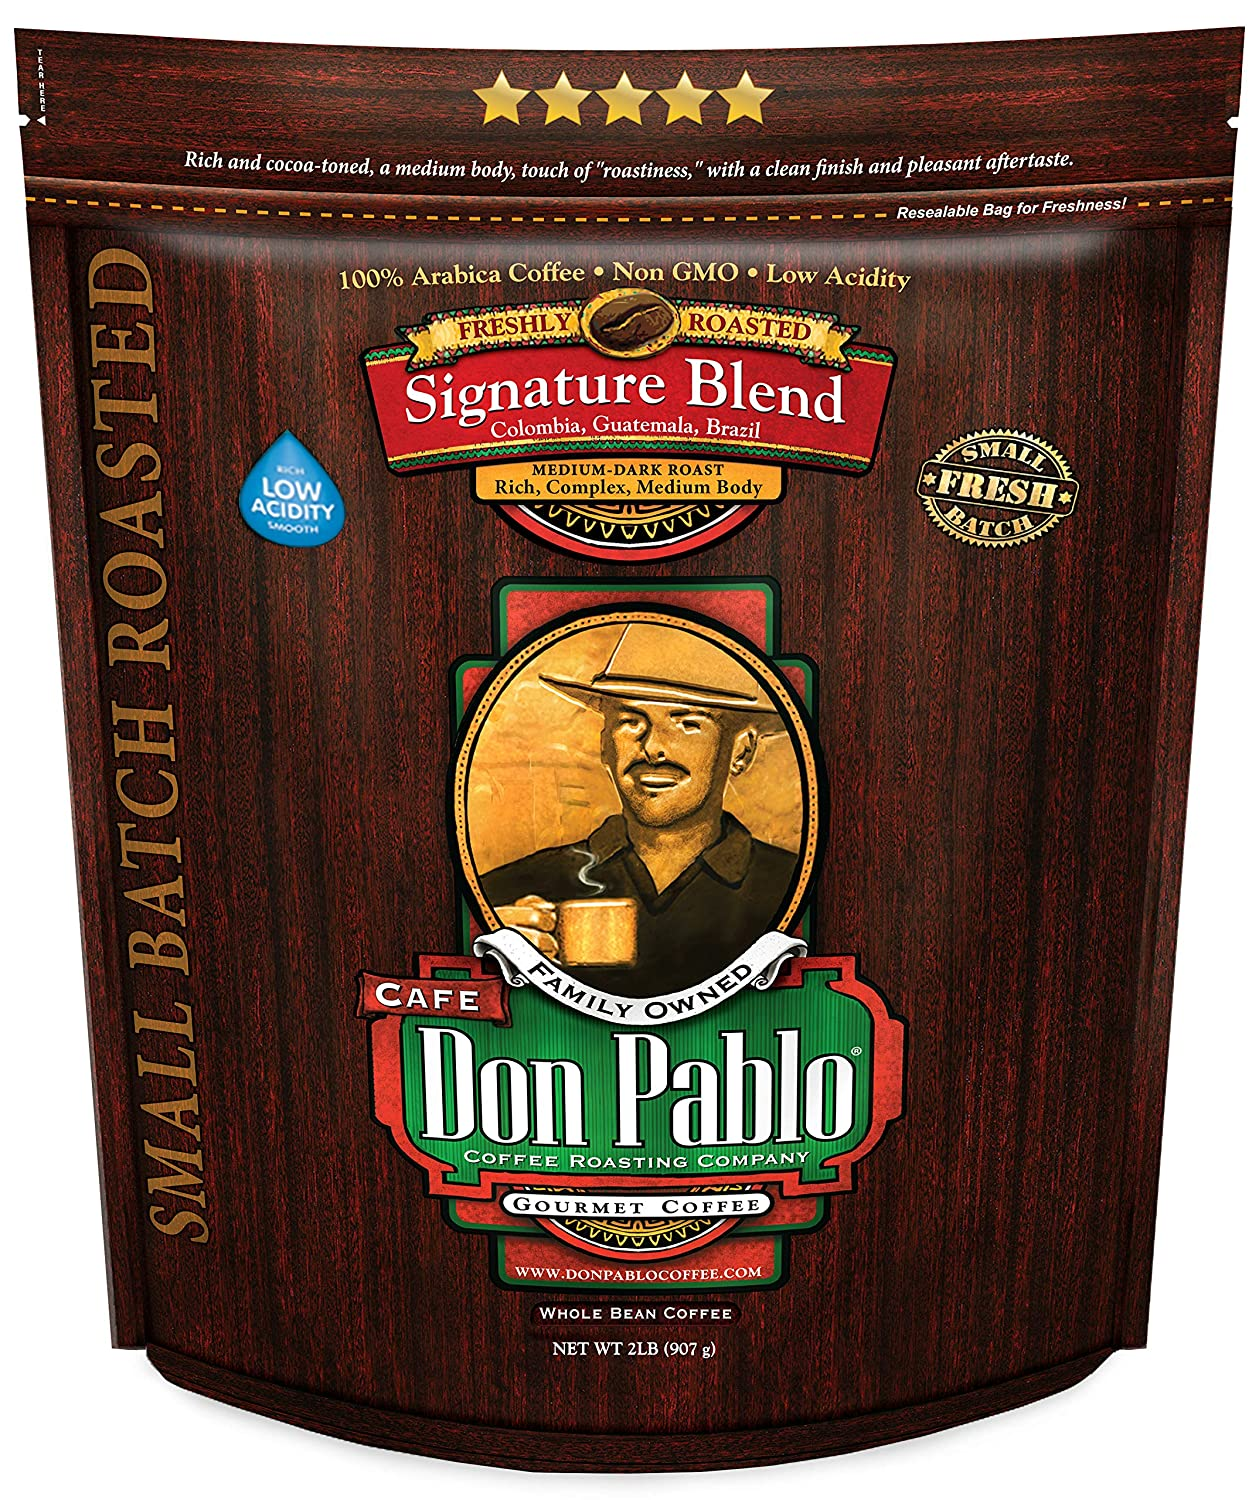 Don Pablo Signature Blend